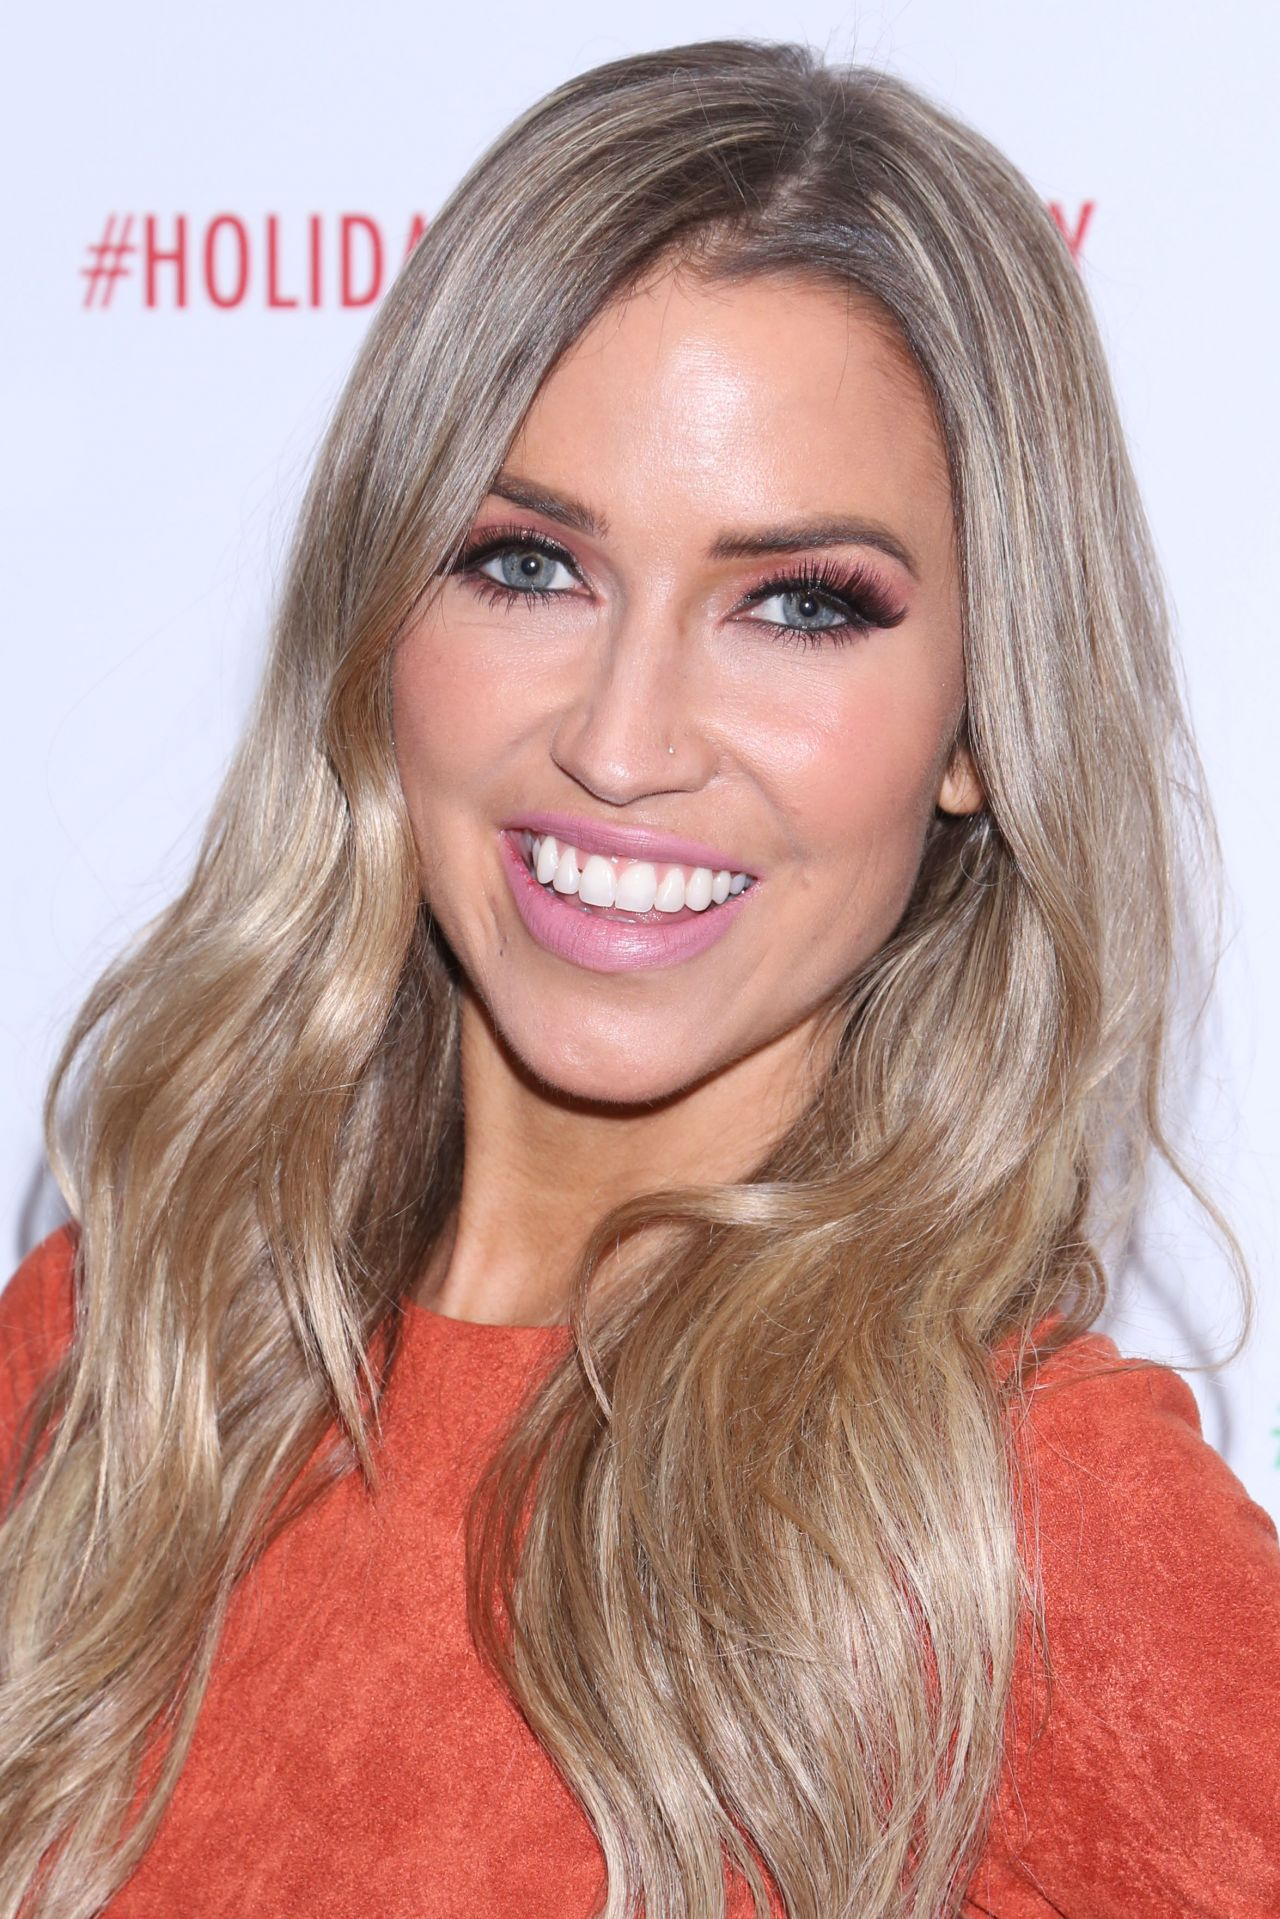 kaitlyn bristowe - photo #20